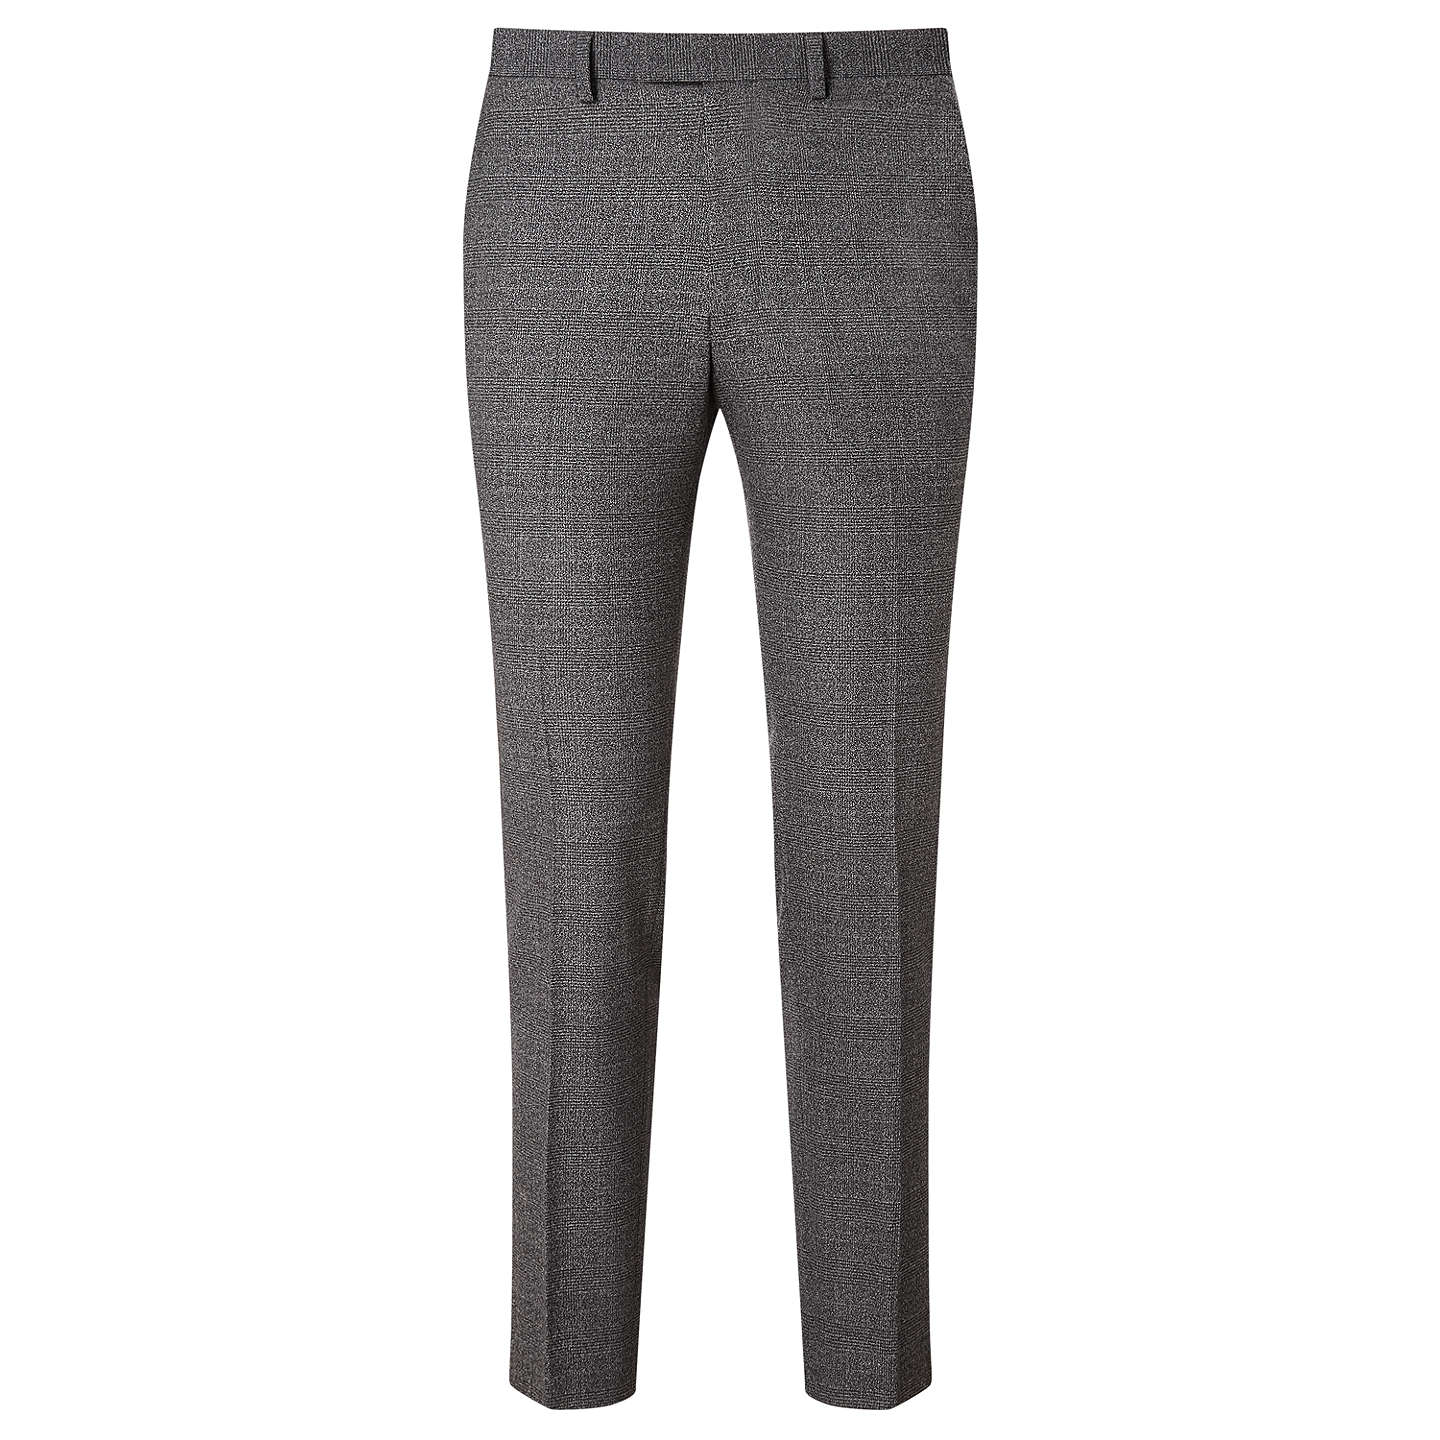 BuyKin by John Lewis Elm Check Slim Fit Suit Trousers, Charcoal, 30S Online at johnlewis.com